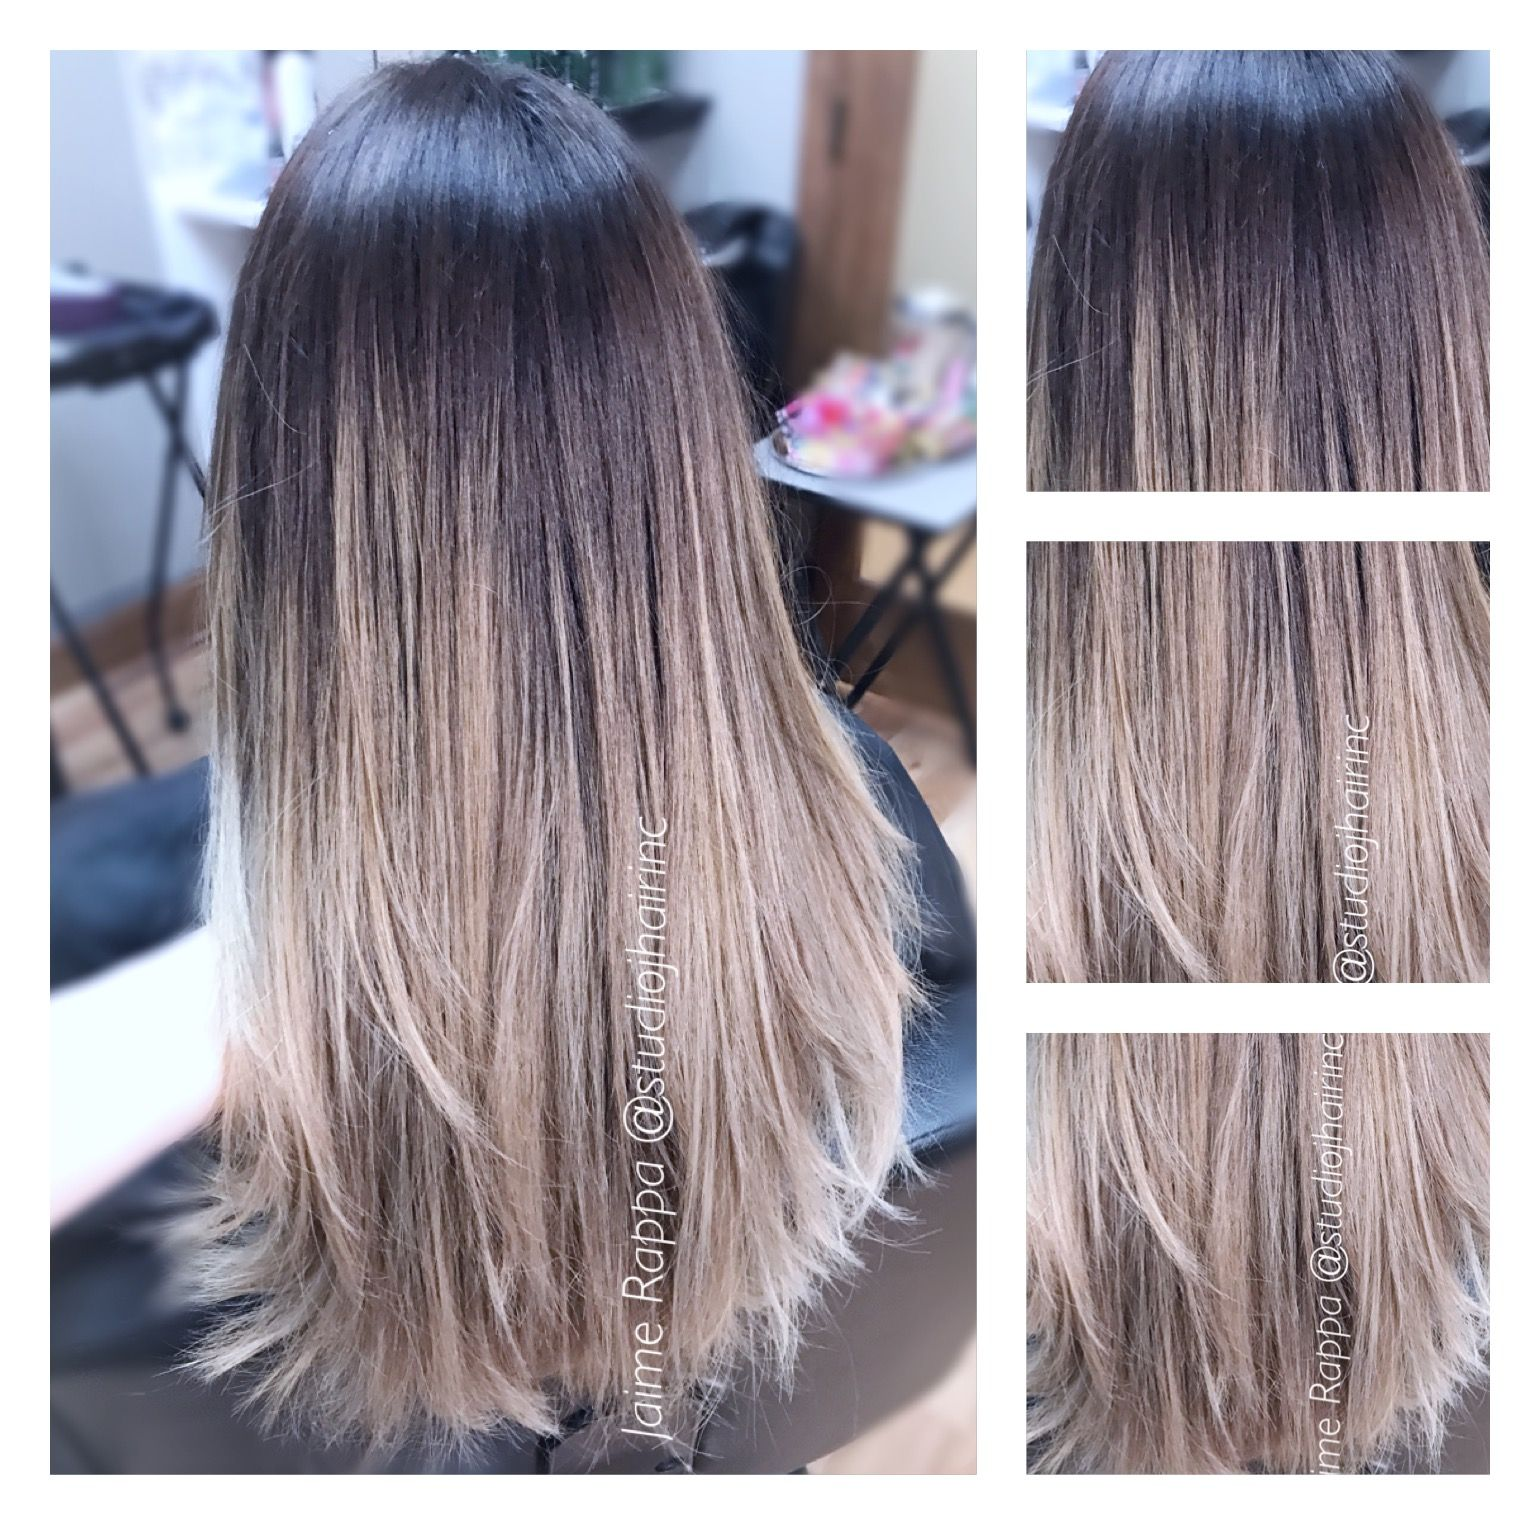 Ombre Didn T Hurt The Integrity Of Her Hair By Using Redken Ph Bonder Beautiful Brown To Blonde Blend Hair Color Experts Color Correction Hair Best Hair Salon